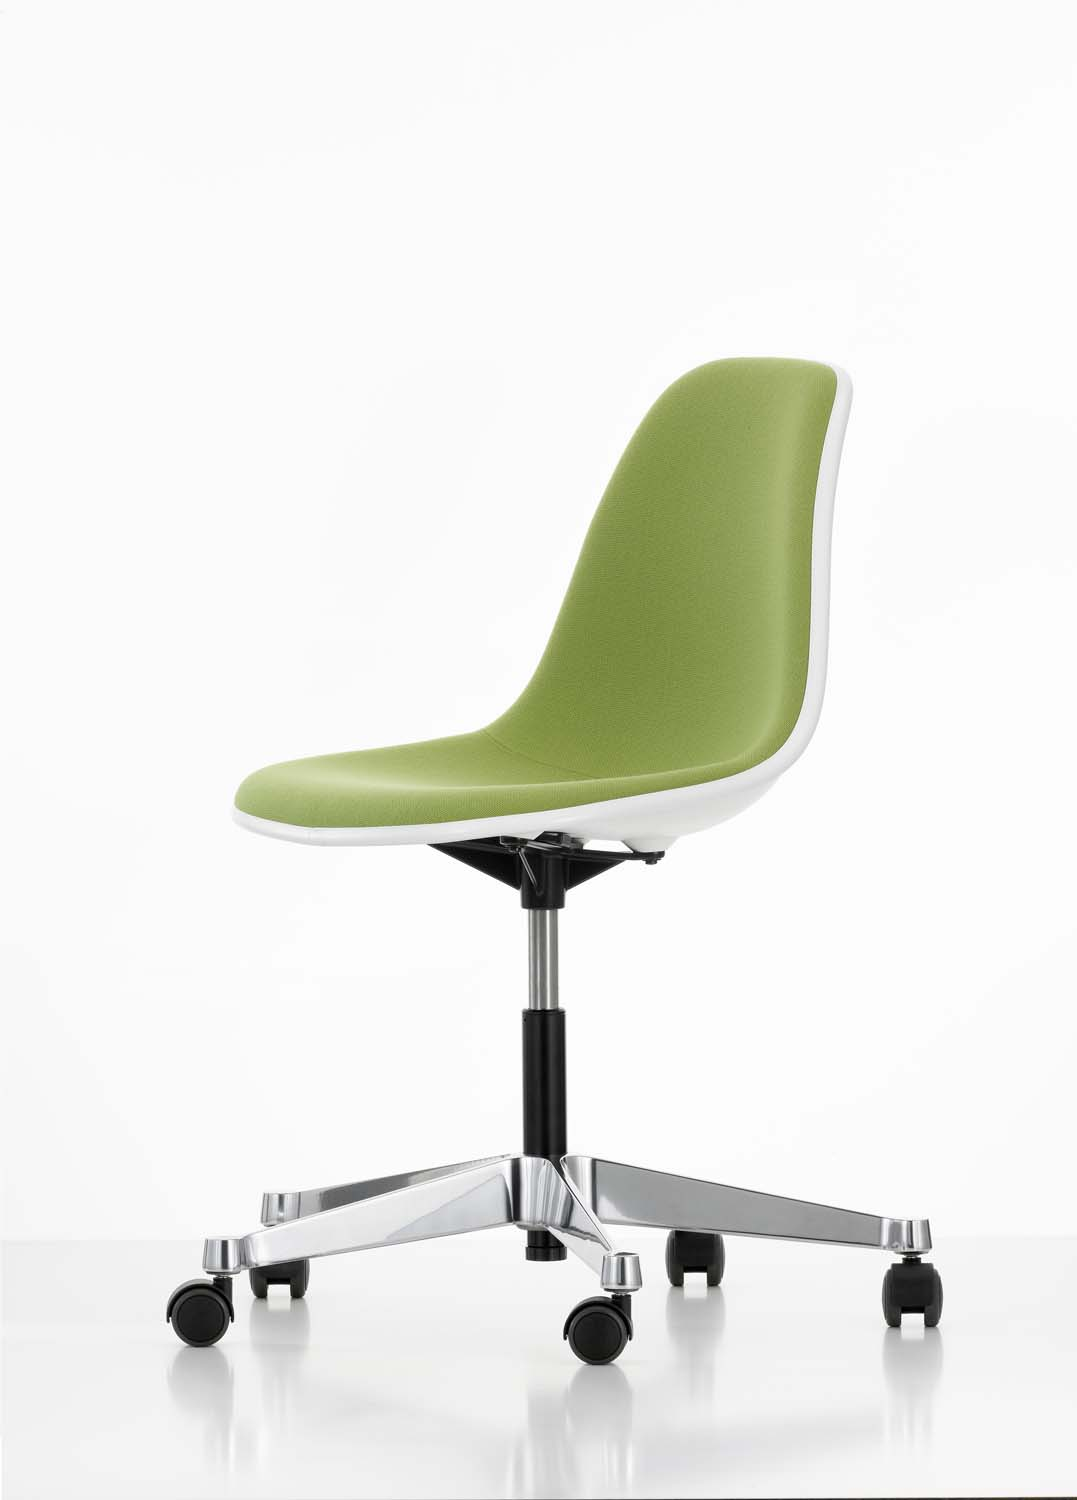 office chair qvc blue chairs seating benchmarque